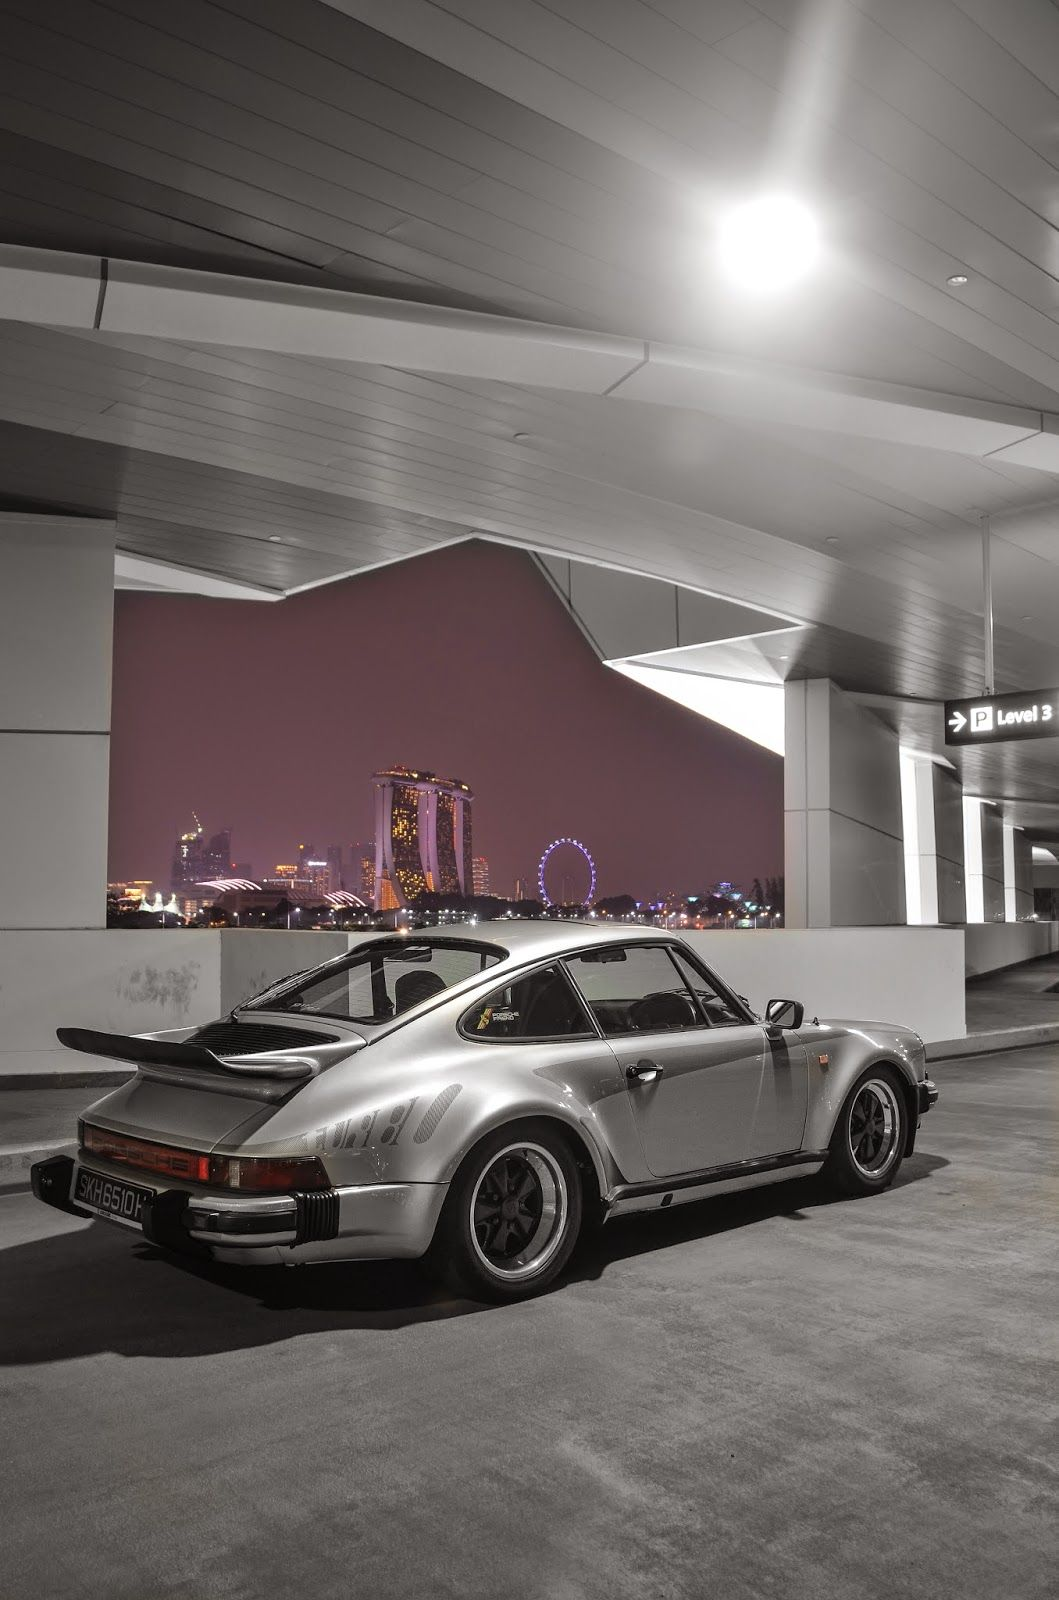 Car decal design singapore - 1977 Porsche 911 Turbo 3 0 With Turbo Side Stripes Decal Factory Option Singapore S